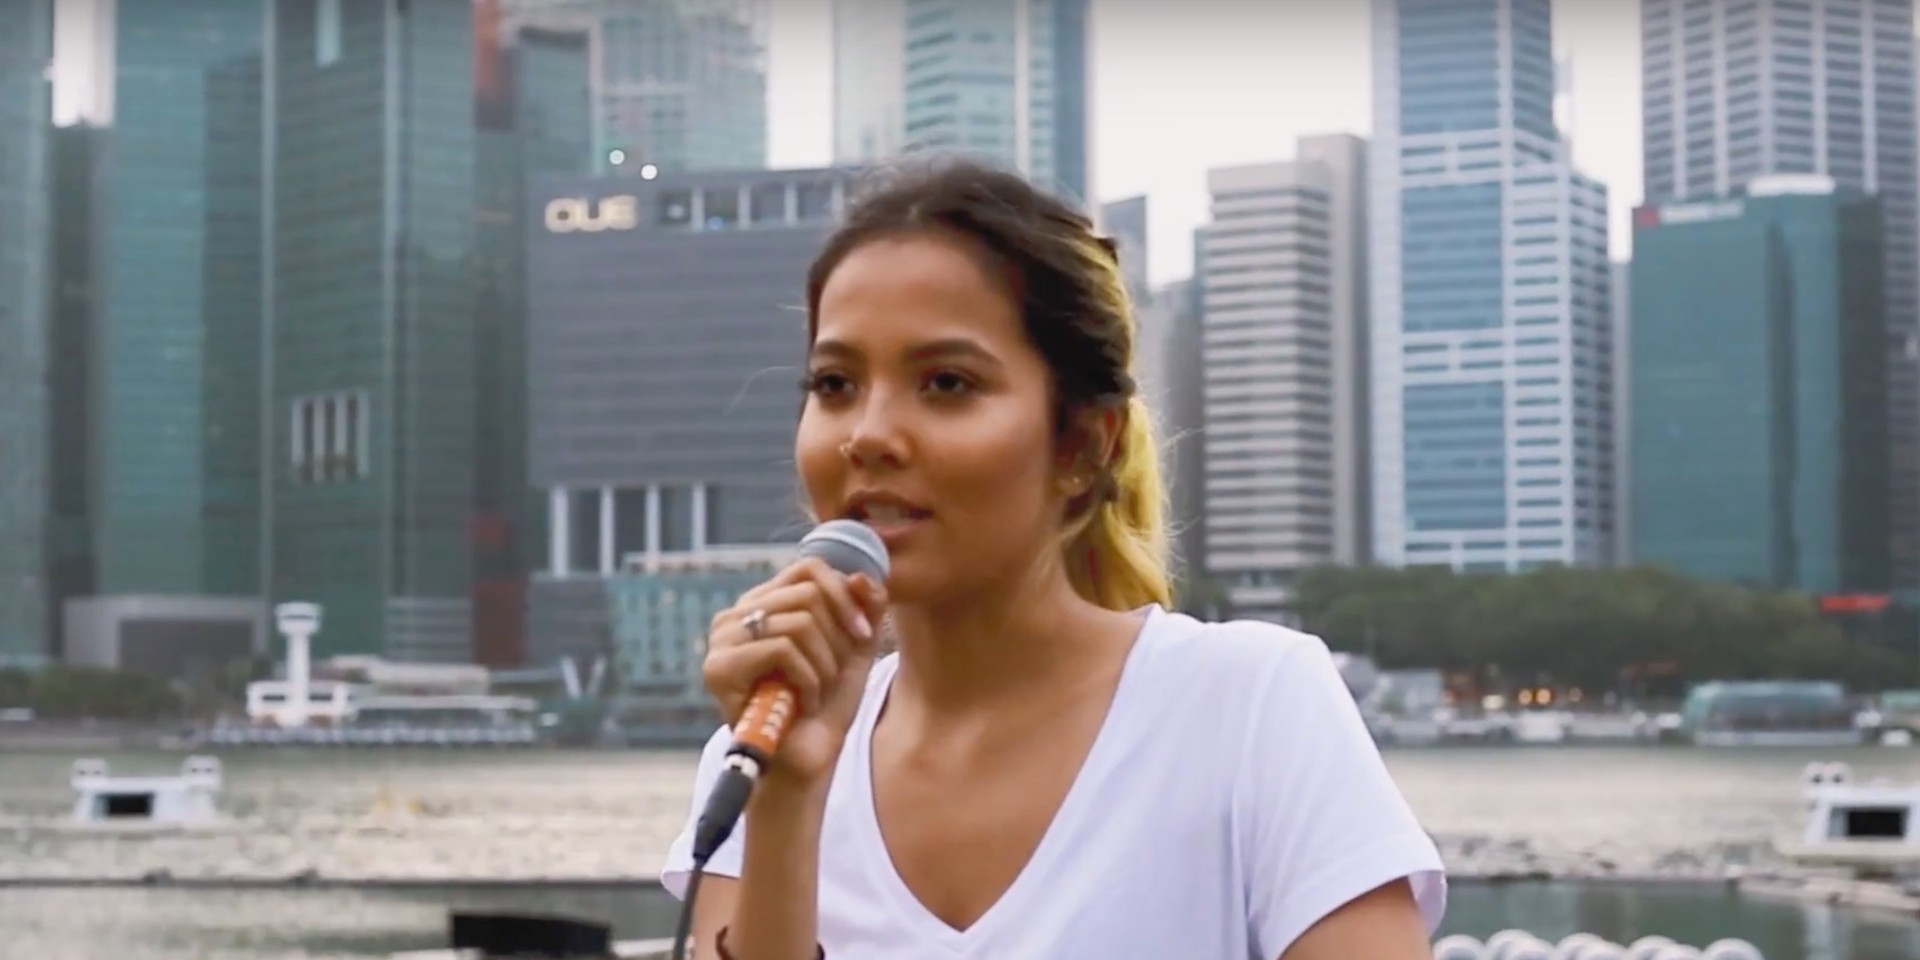 Aisyah Aziz talks about how she got her start in music, her inspirations, singing in Malay and more – watch